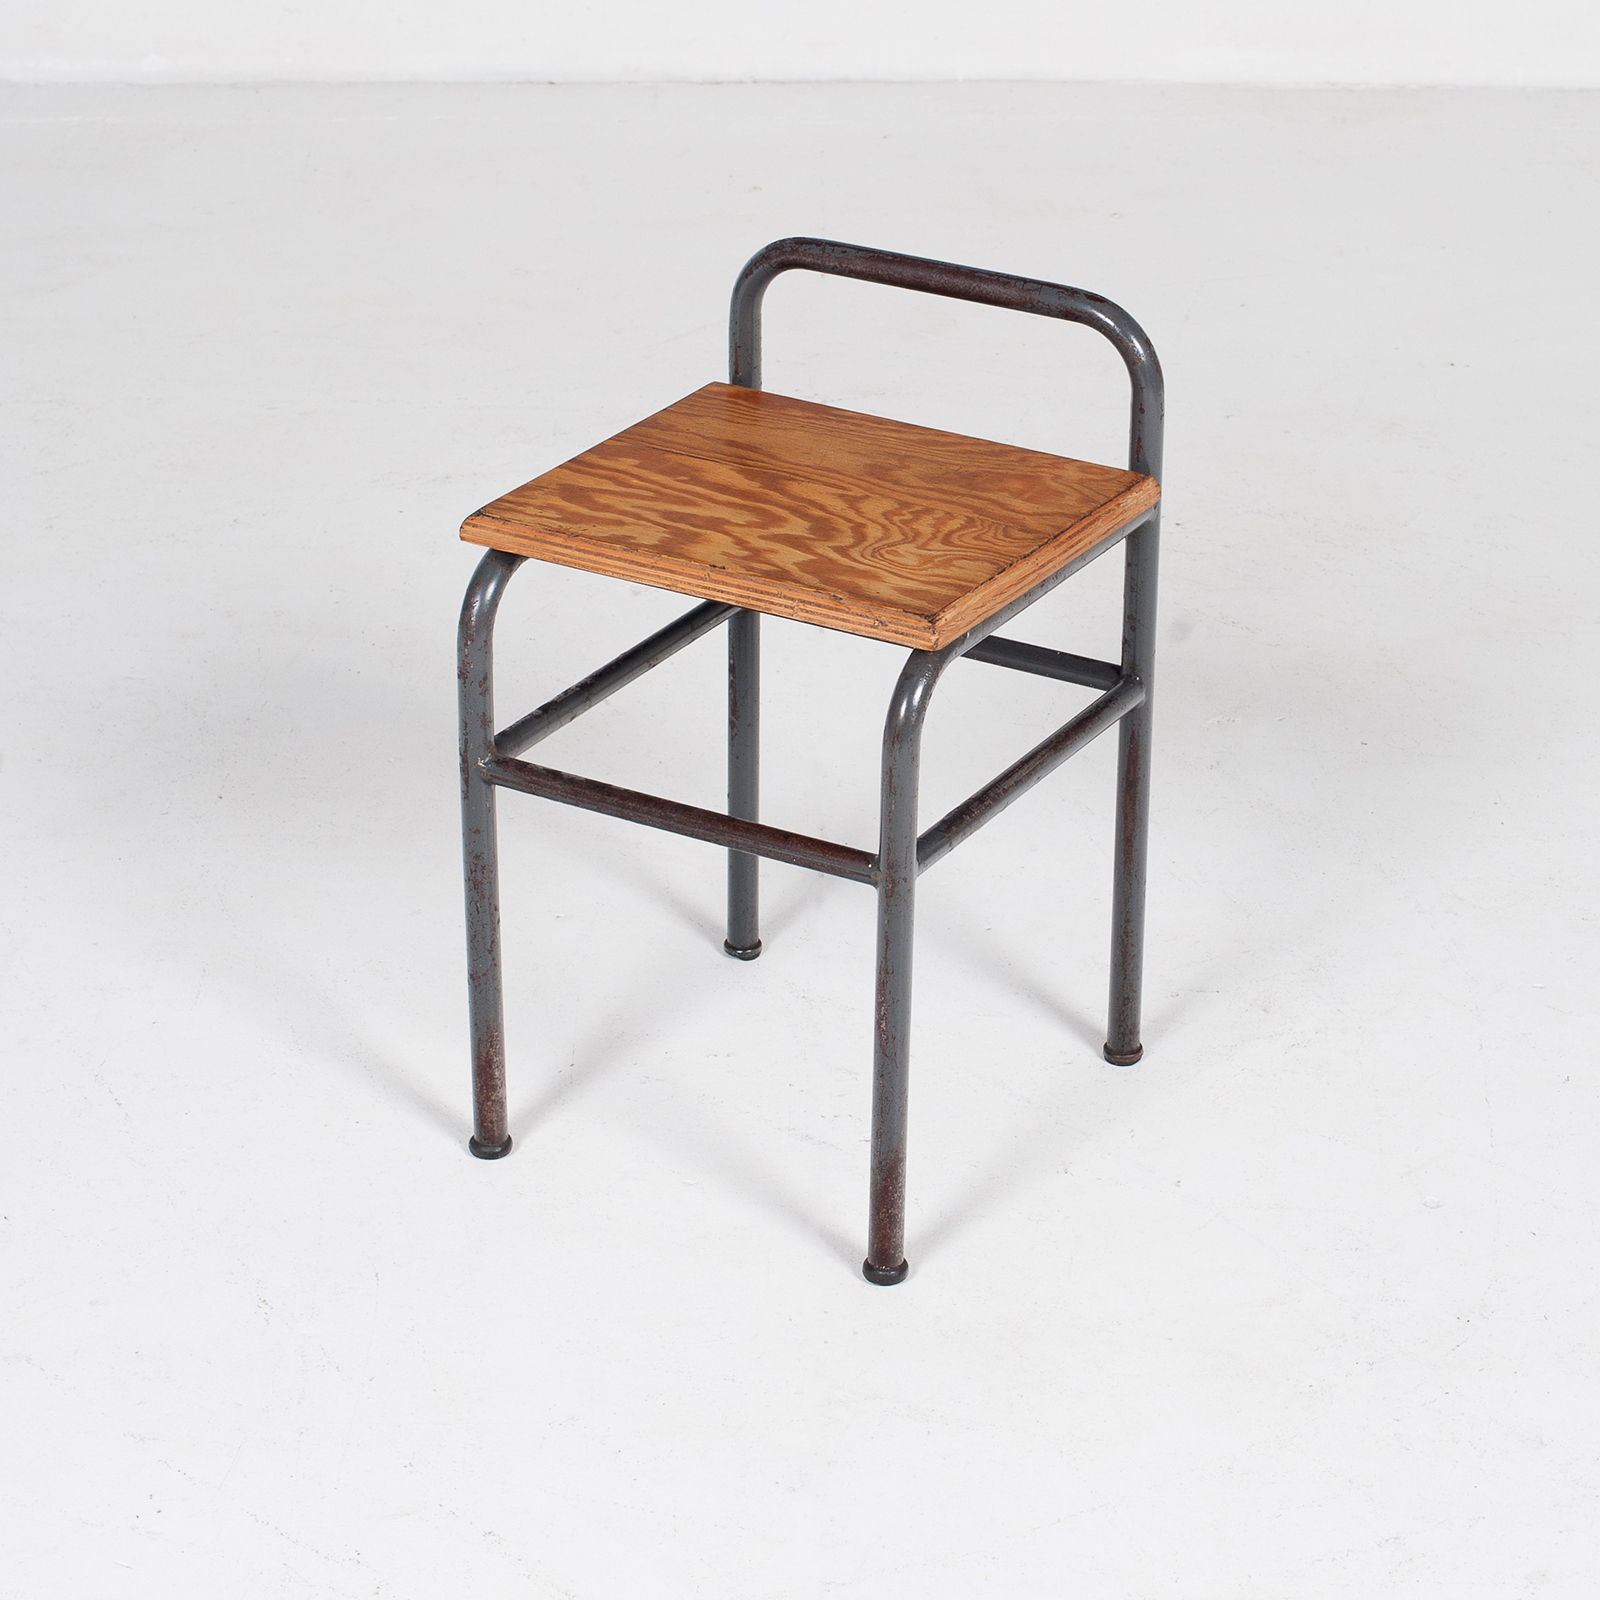 Industrial Stool With Timber Seat, Belgium5